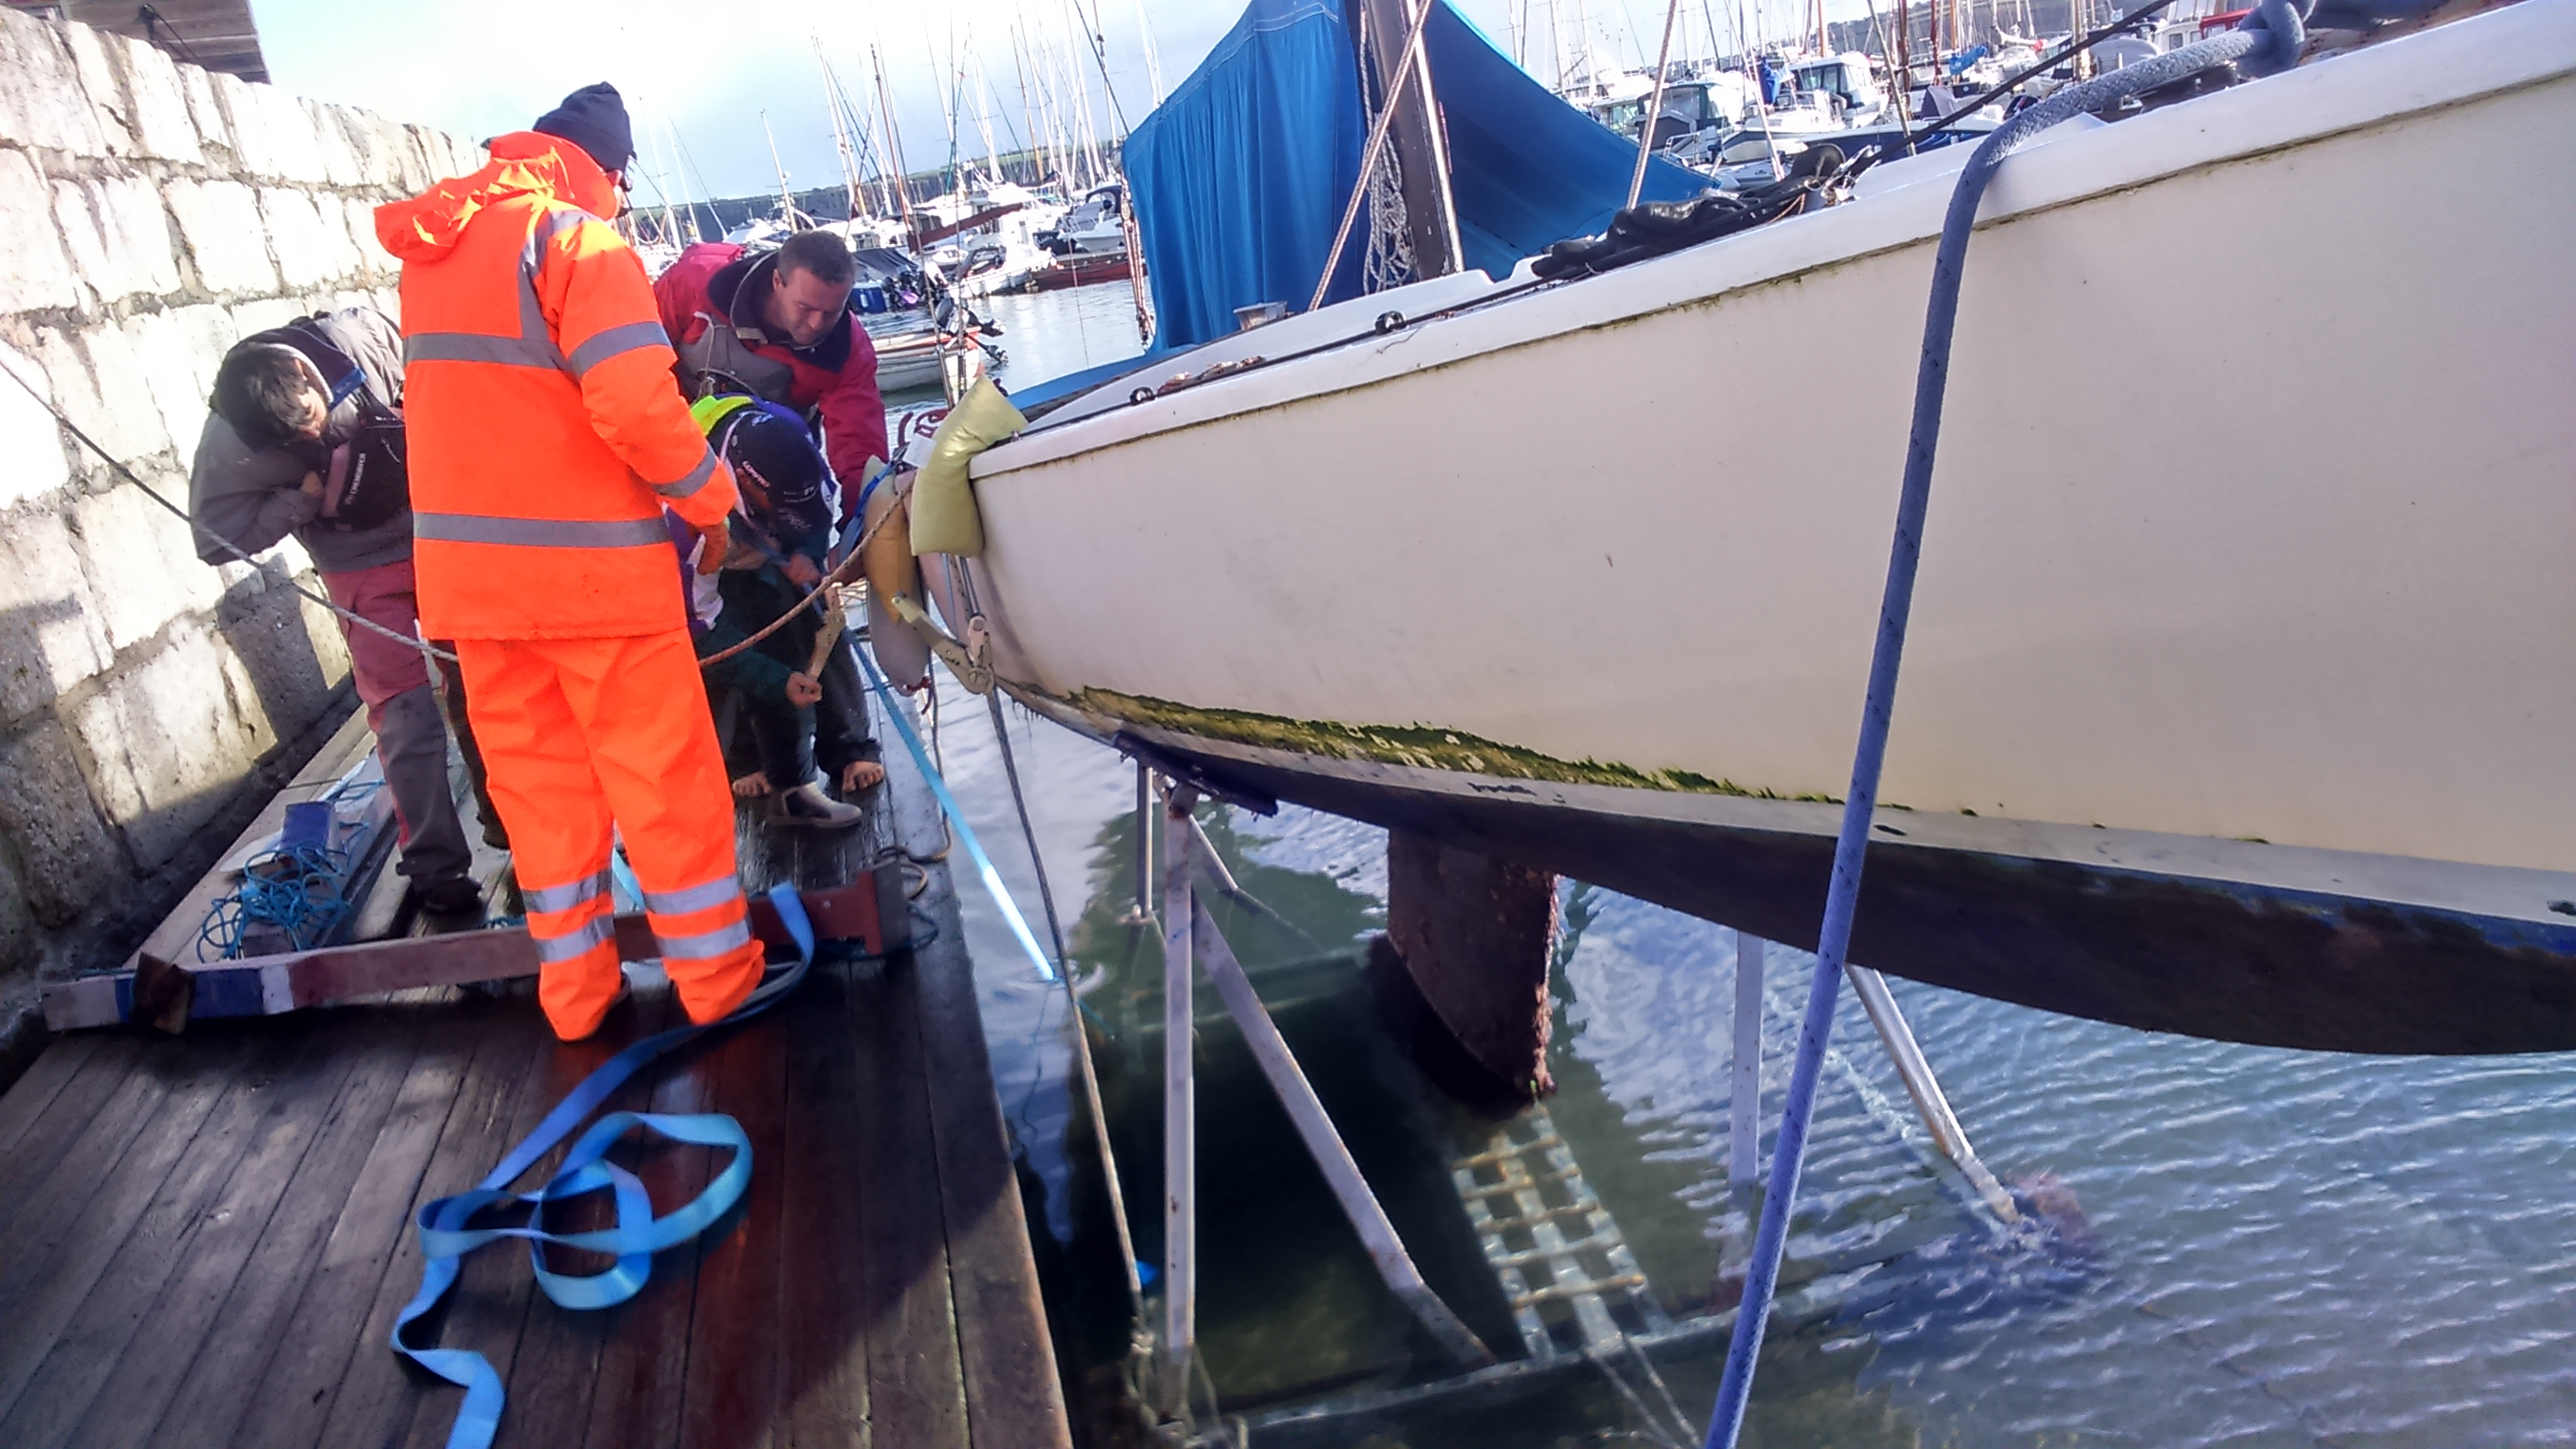 merlin boat recovery Mylor Sailability Falmouth School